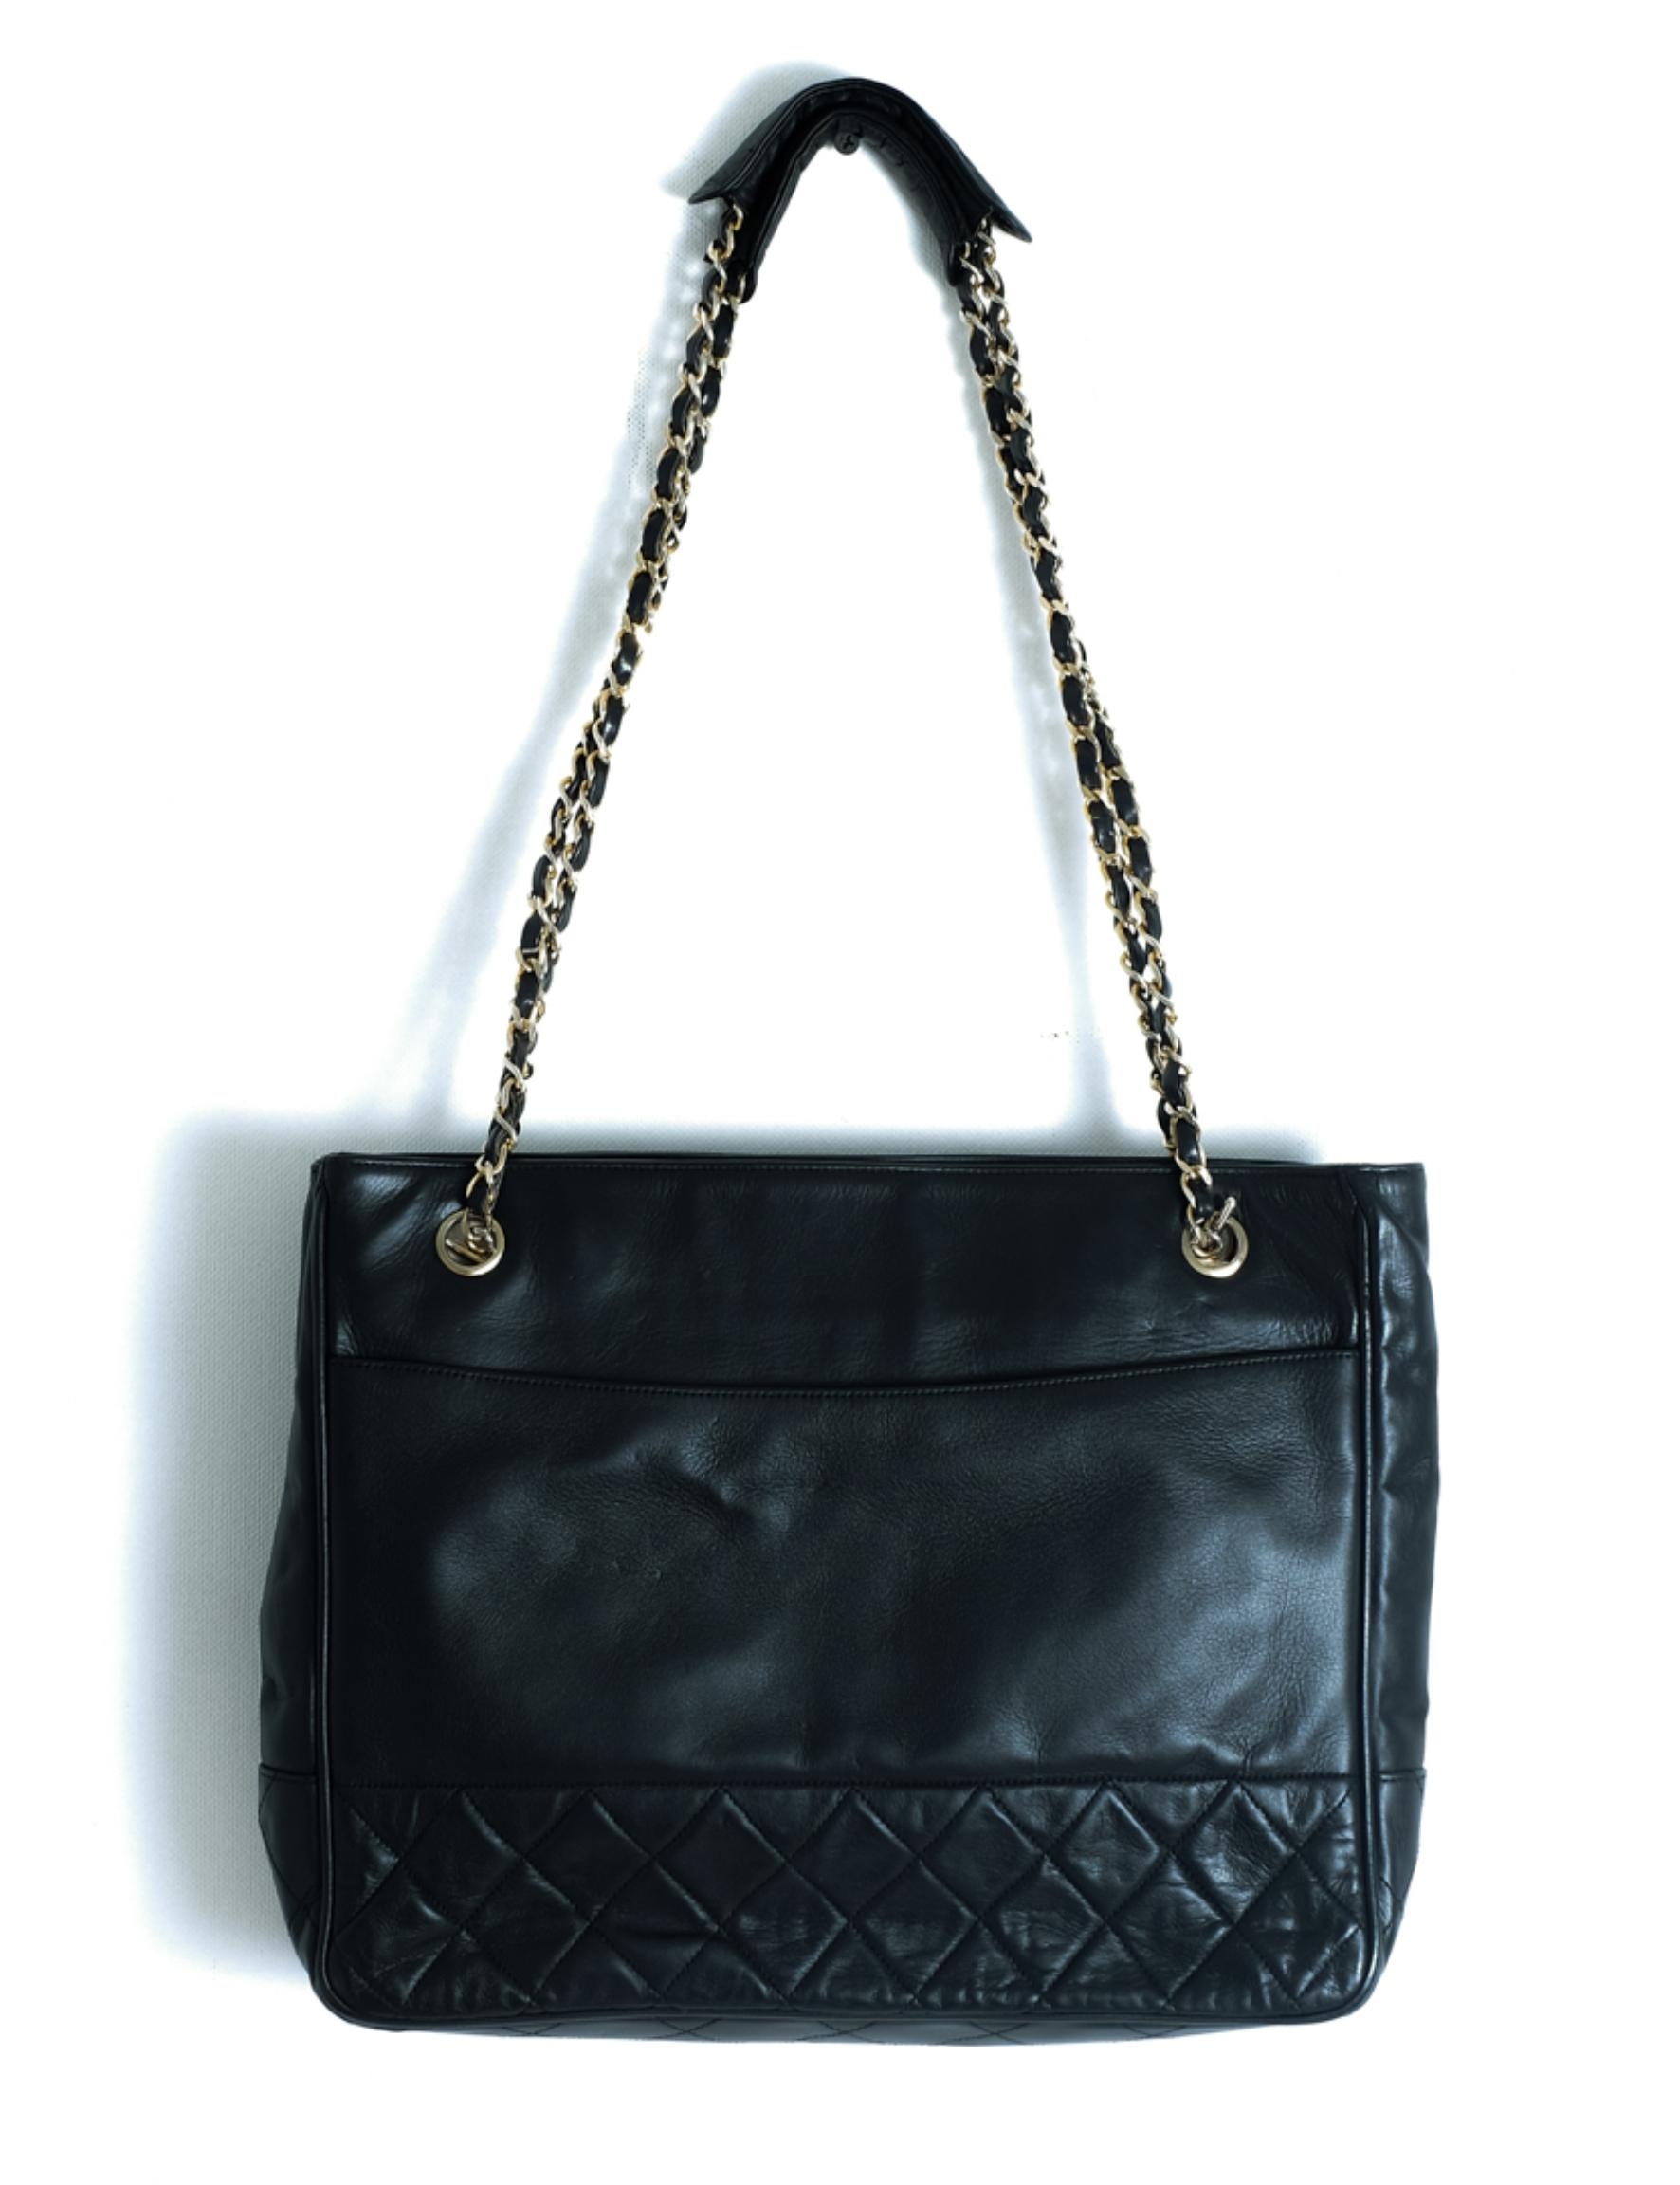 Vintage Chanel Quilted Black Leather Tote Bag